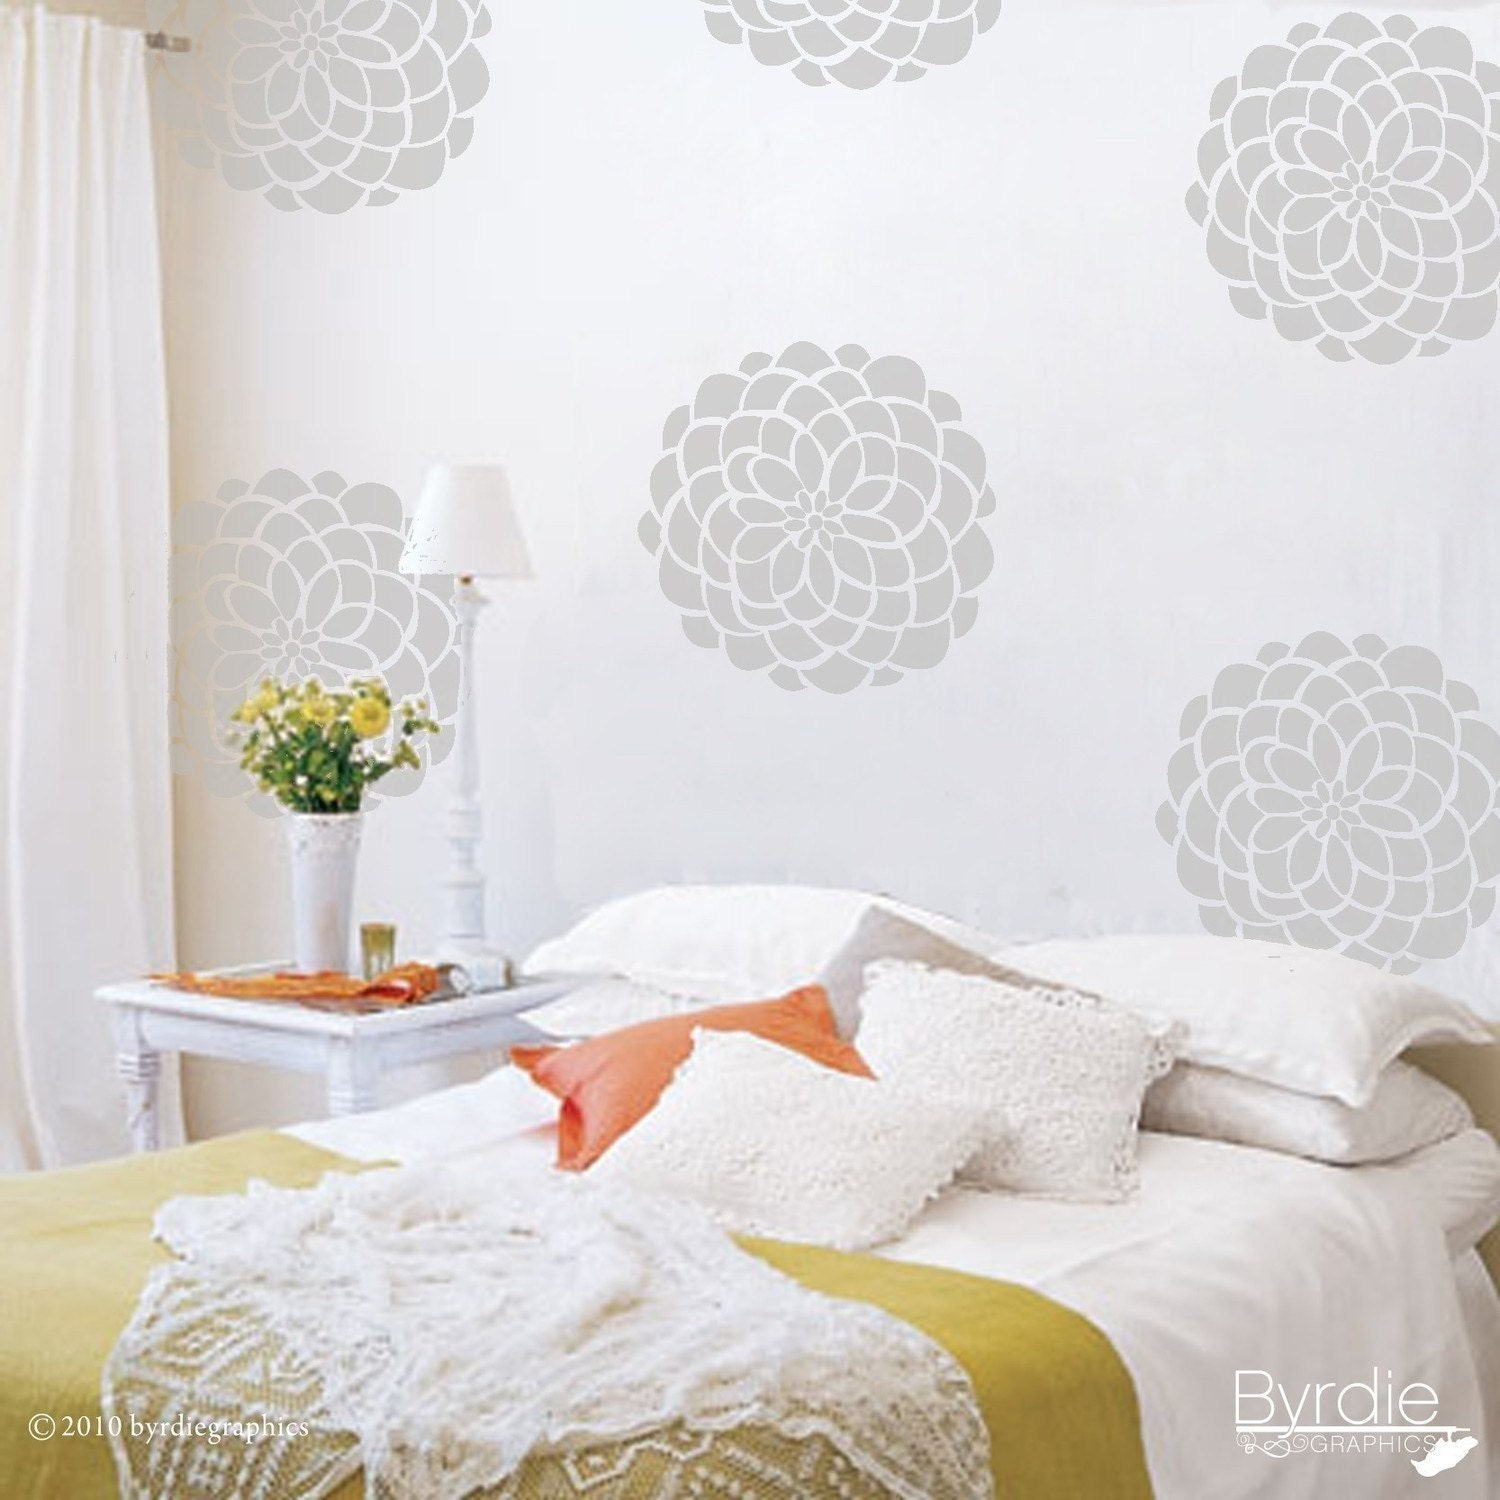 Flower Vinyl Wall Decals 10 Flower Bloom Wall Graphics